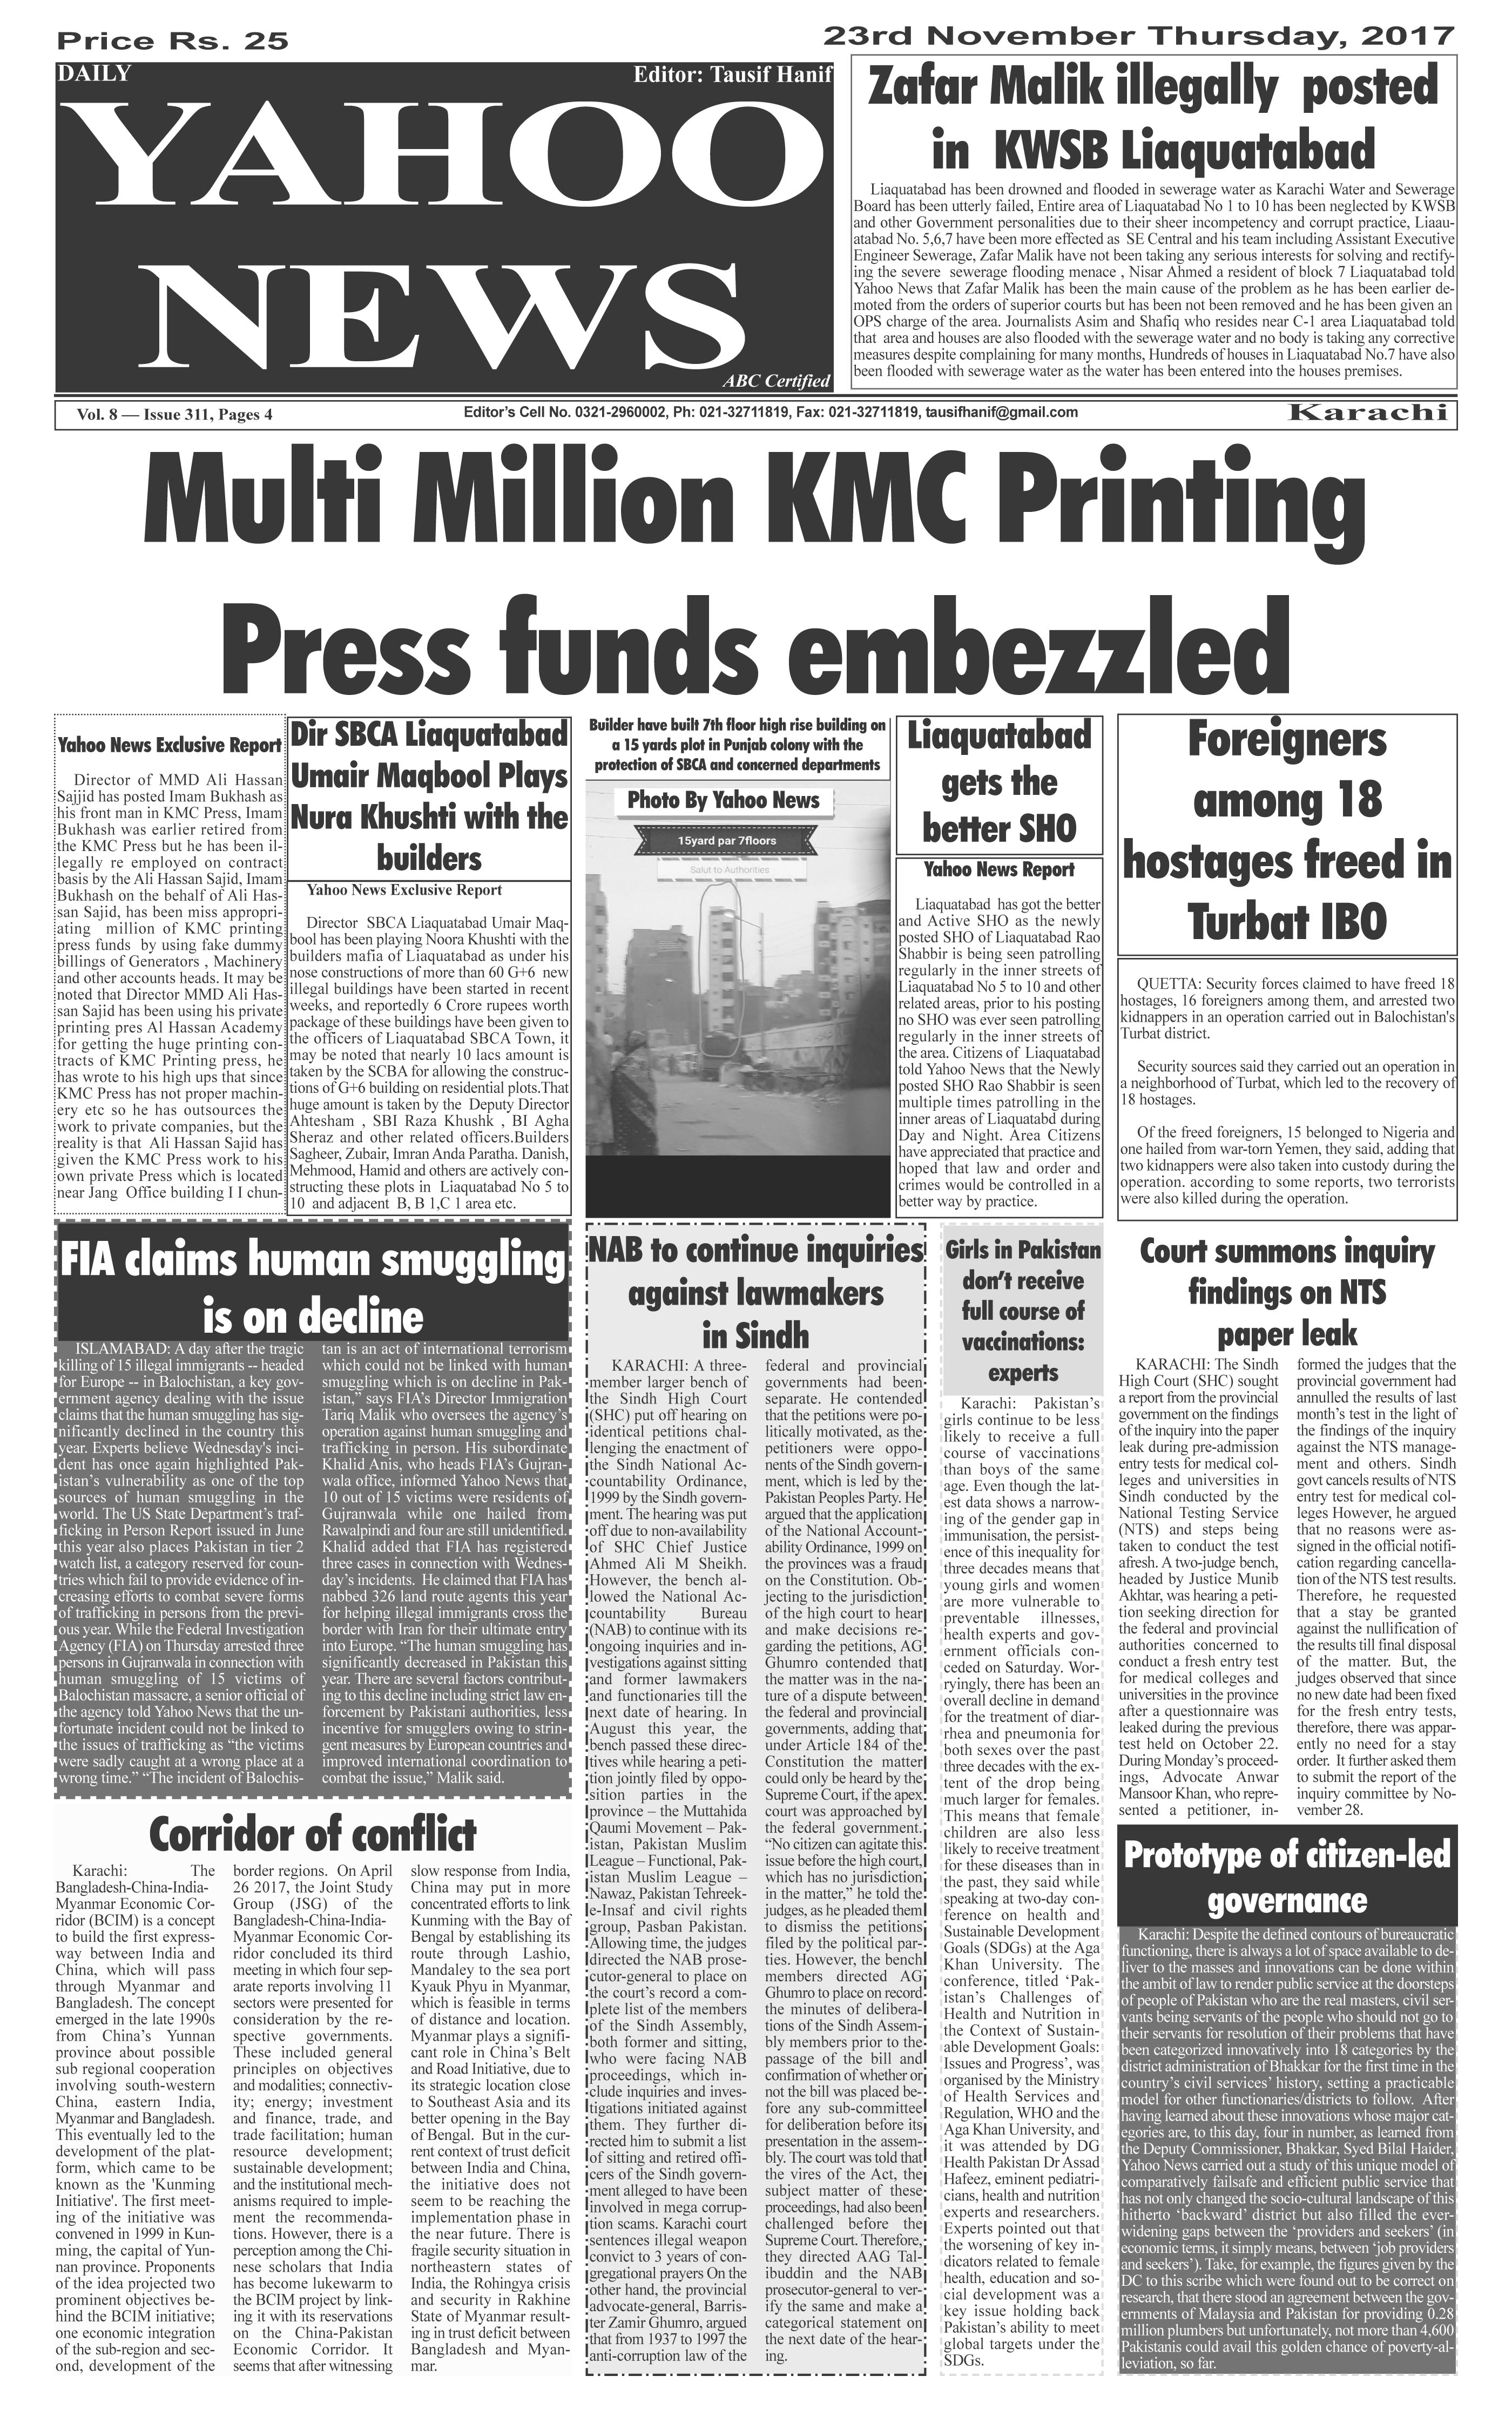 Yahoo News, special Metro Edition dated 23-11-2017